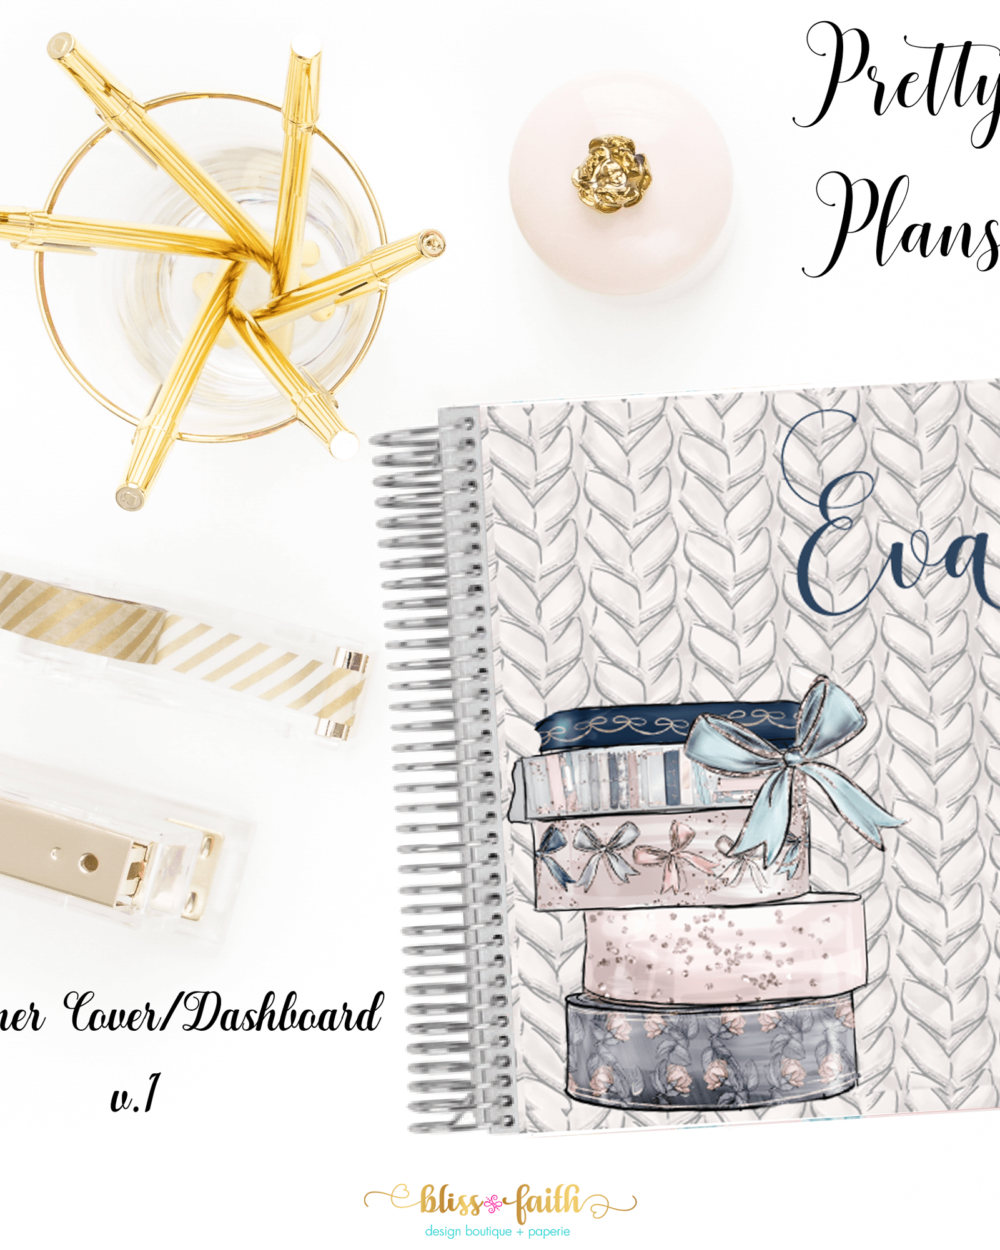 Pretty Plans Planner Cover/Dashboard | blissandfaith.com